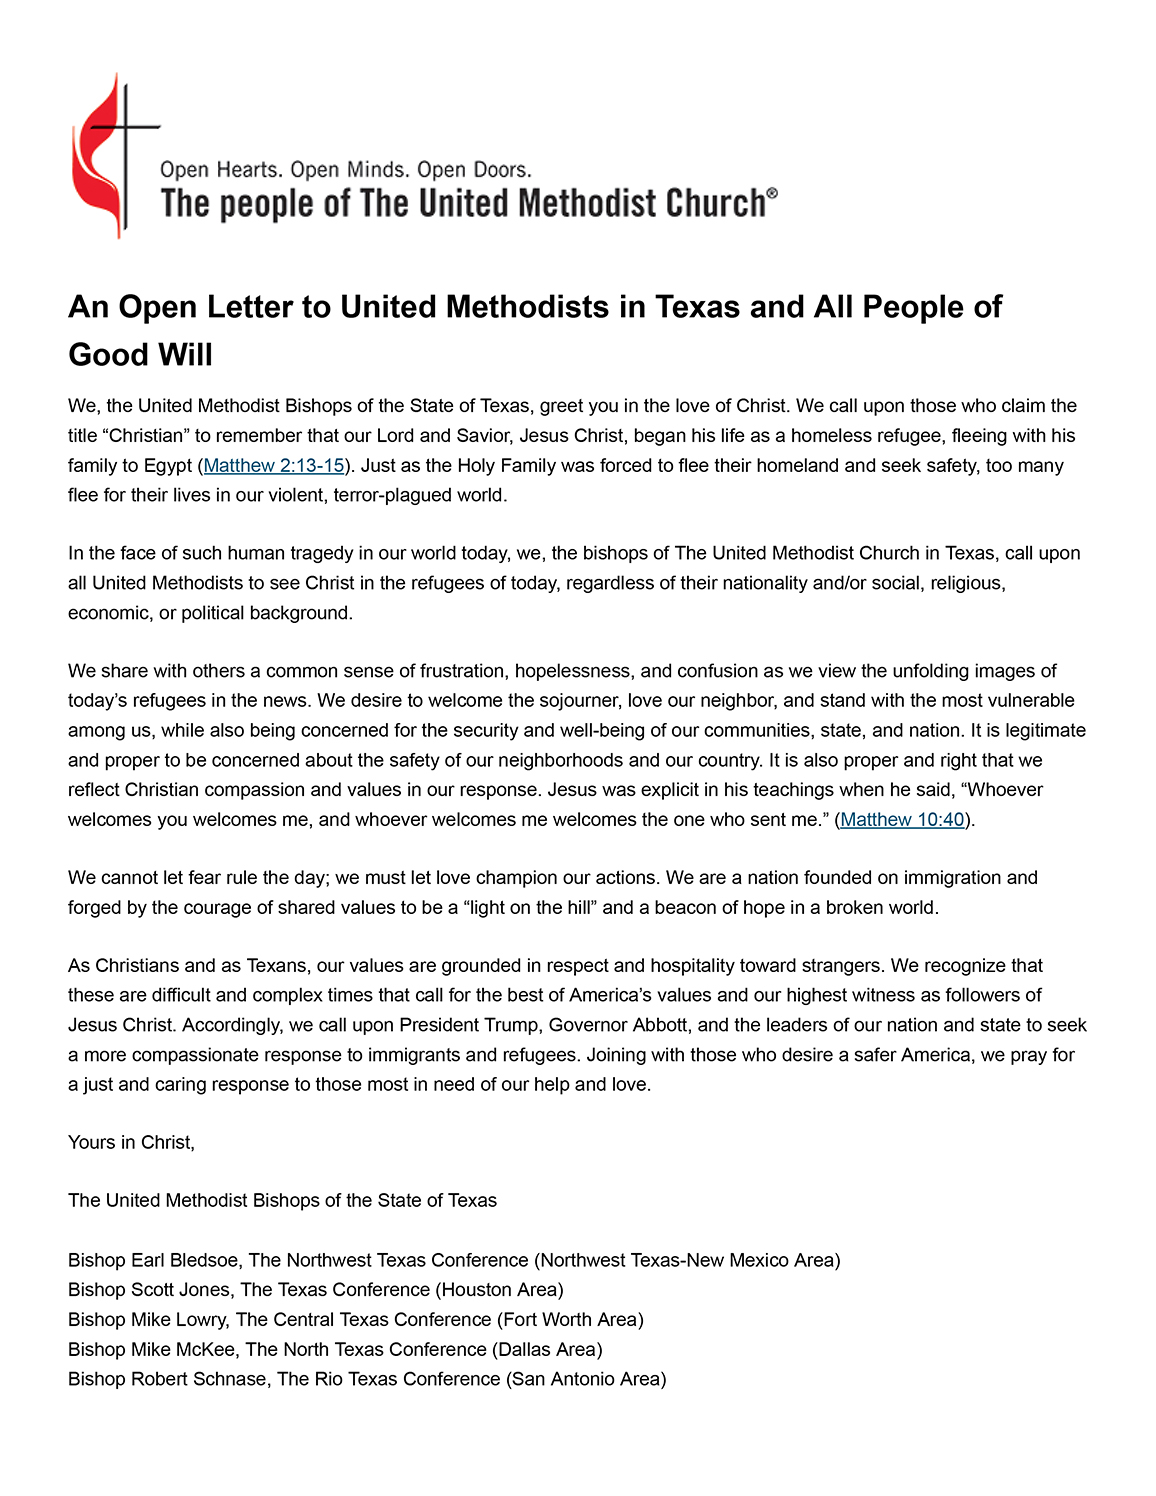 Bishops' Statement on Refugees